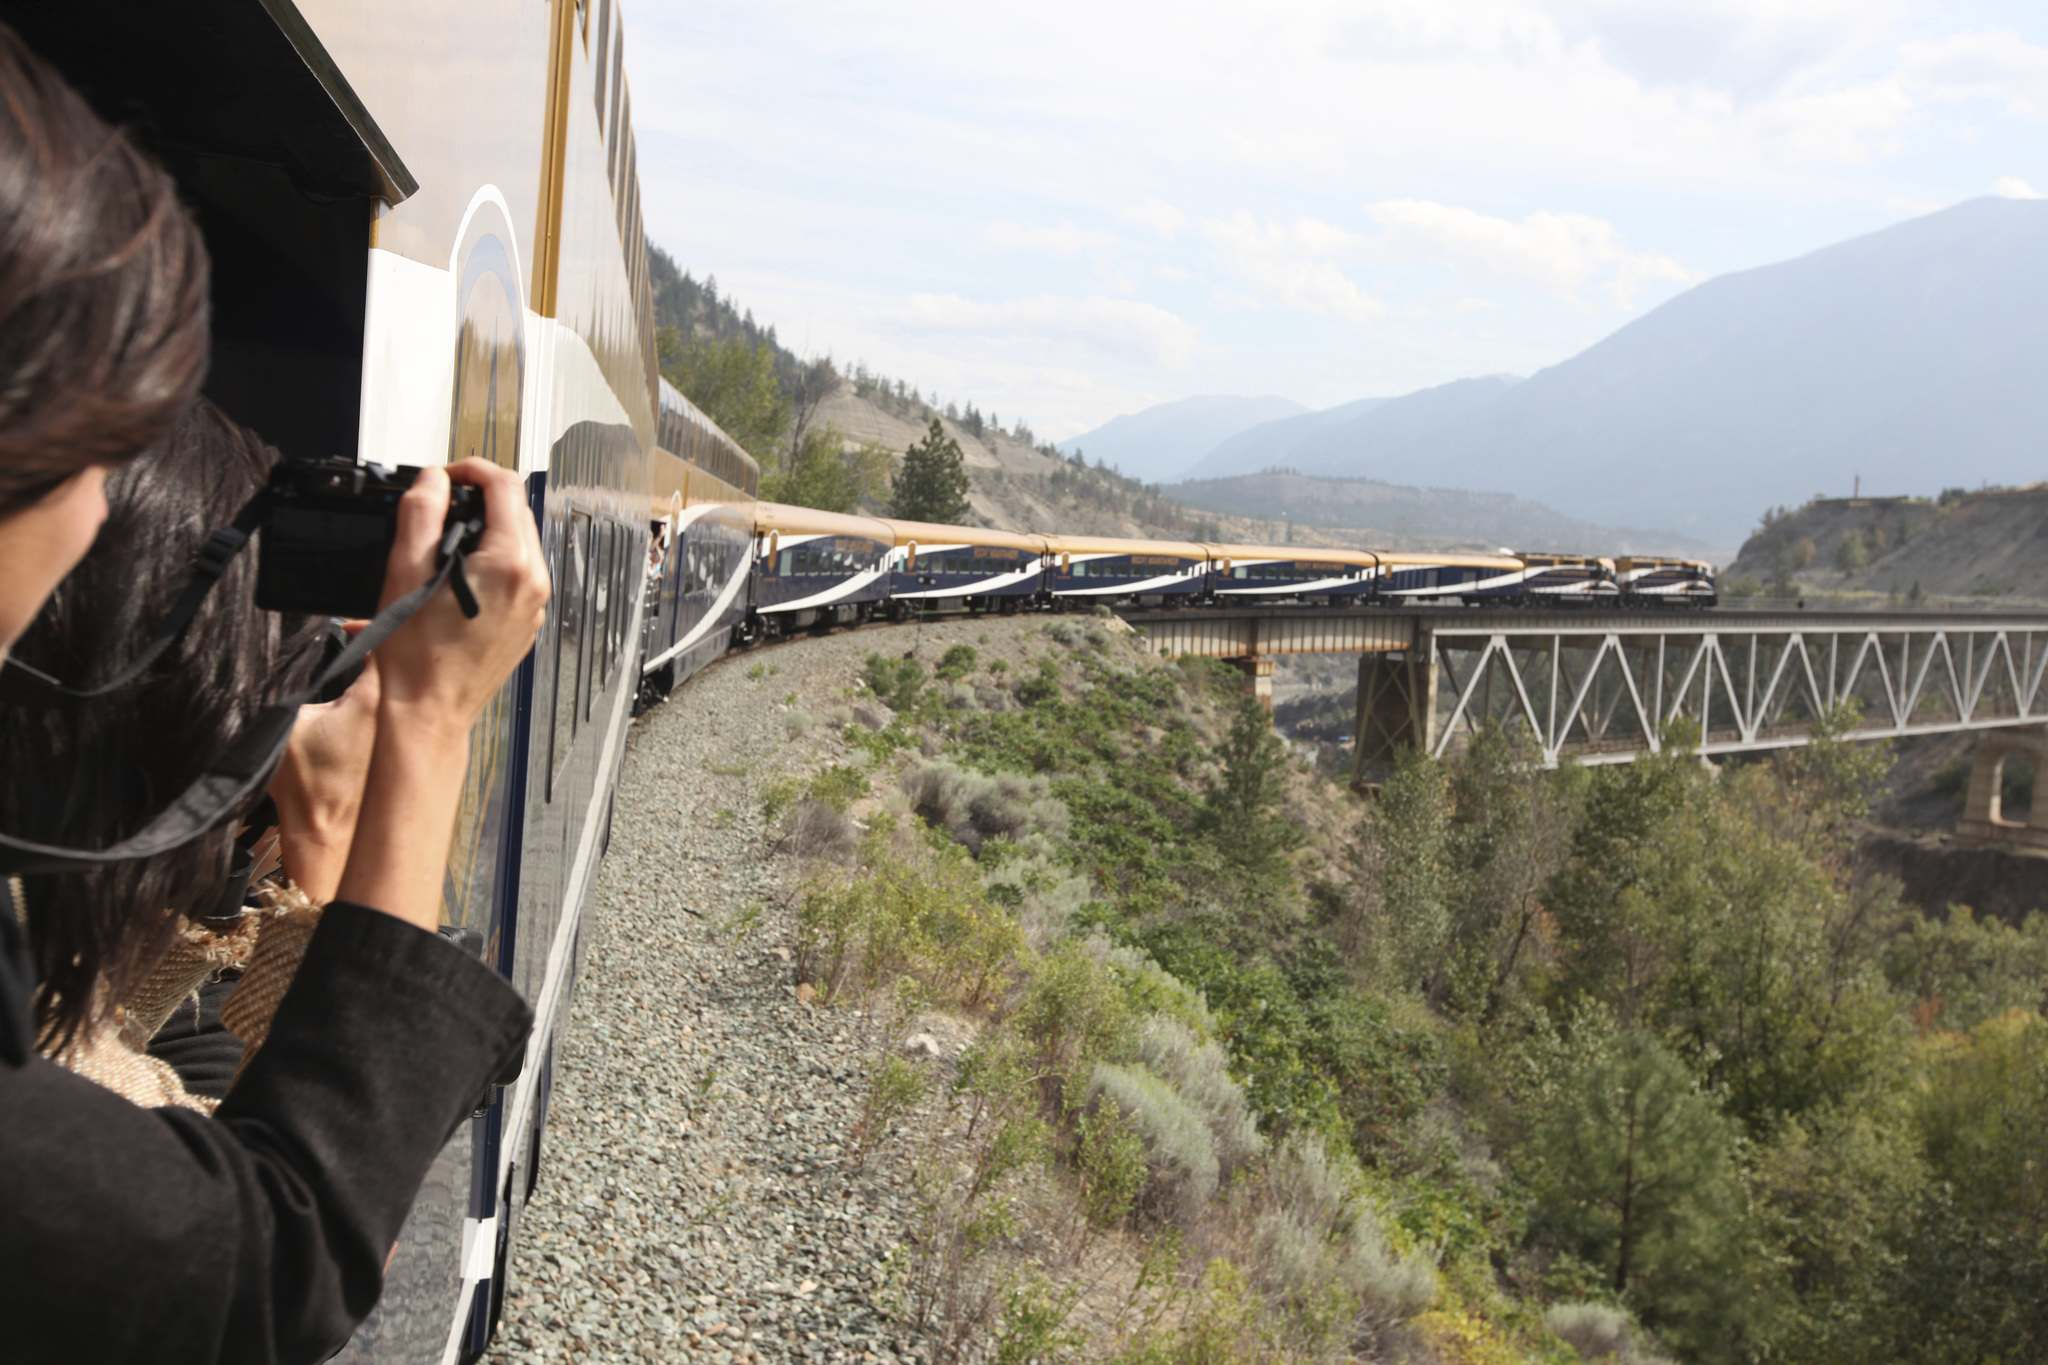 ROCKY MOUNTAINEER</p><p>Passengers on the Rocky Mountaineer take pictures from the open-air observation deck.</p></p>